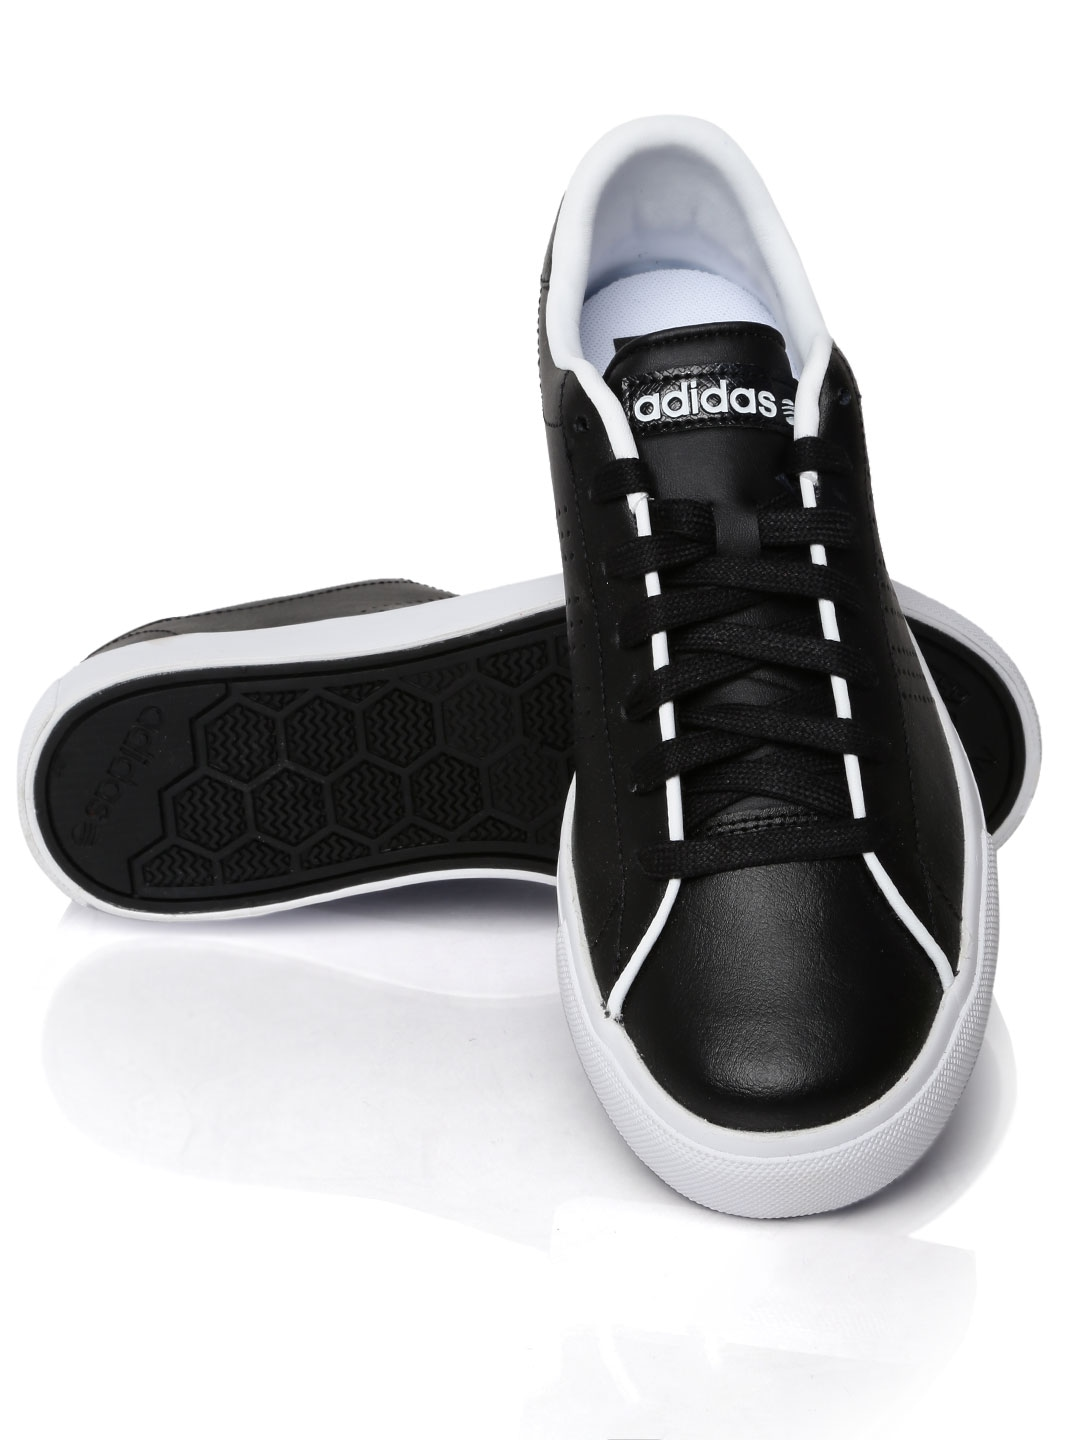 adidas neo black leather sneakers